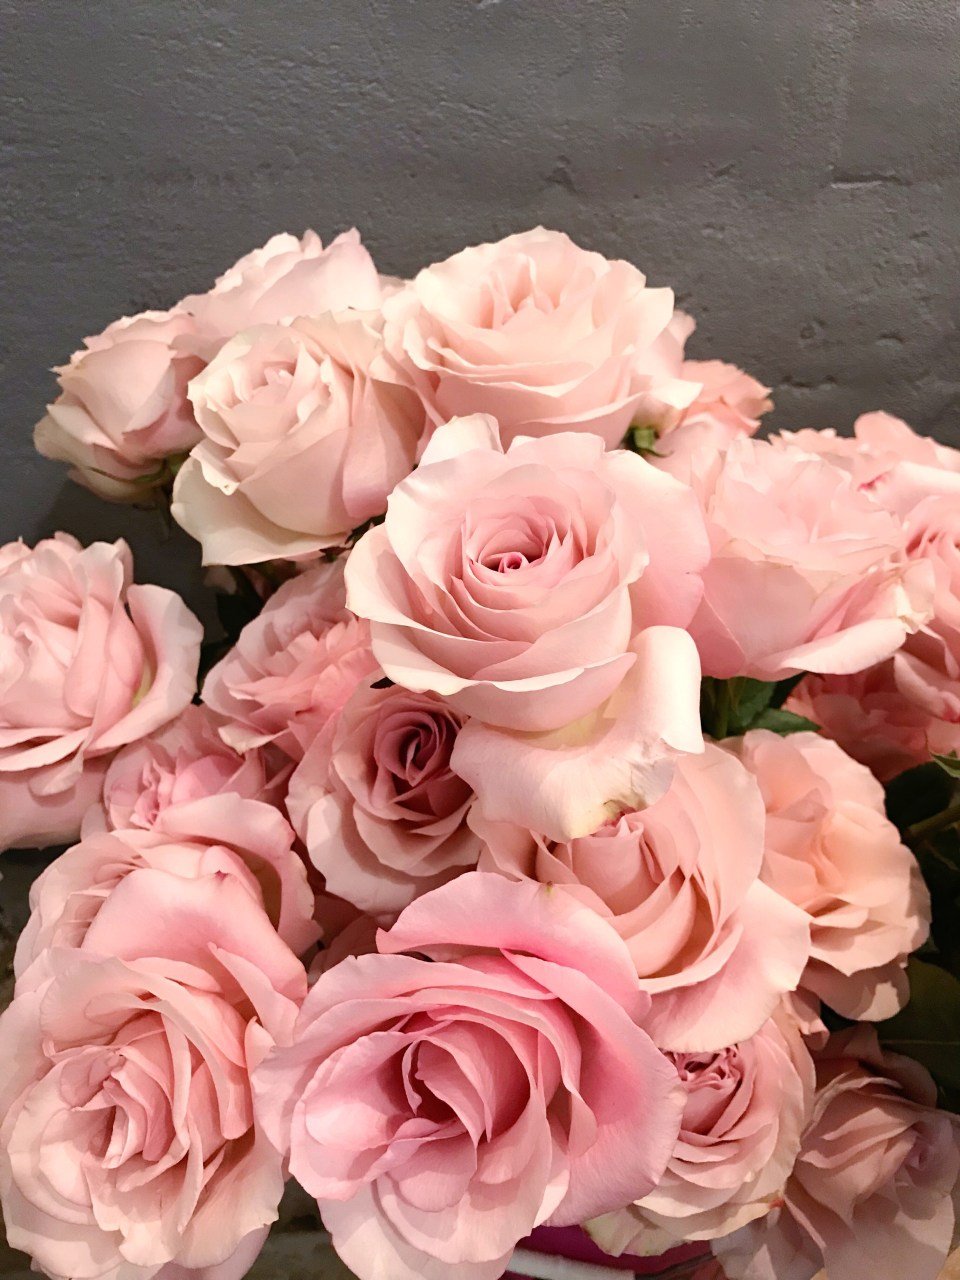 Bucket of pink 'Secret Garden' roses in front of a gray concrete wall.